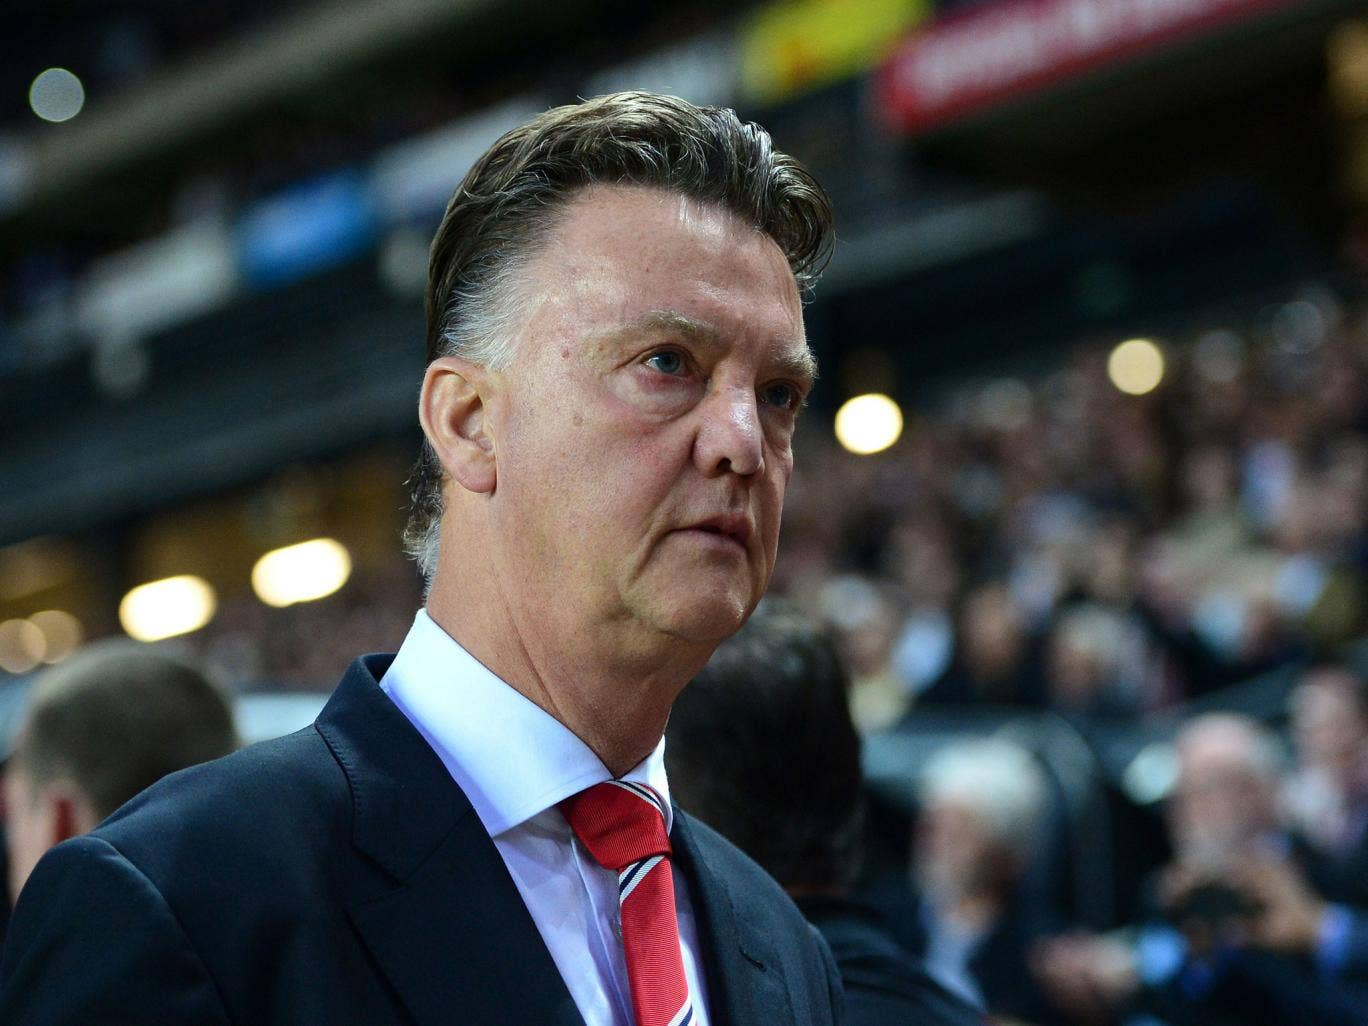 Louis van Gaal looks dejected after Manchester United's 4-0 defeat by MK Dons on Tuesday night